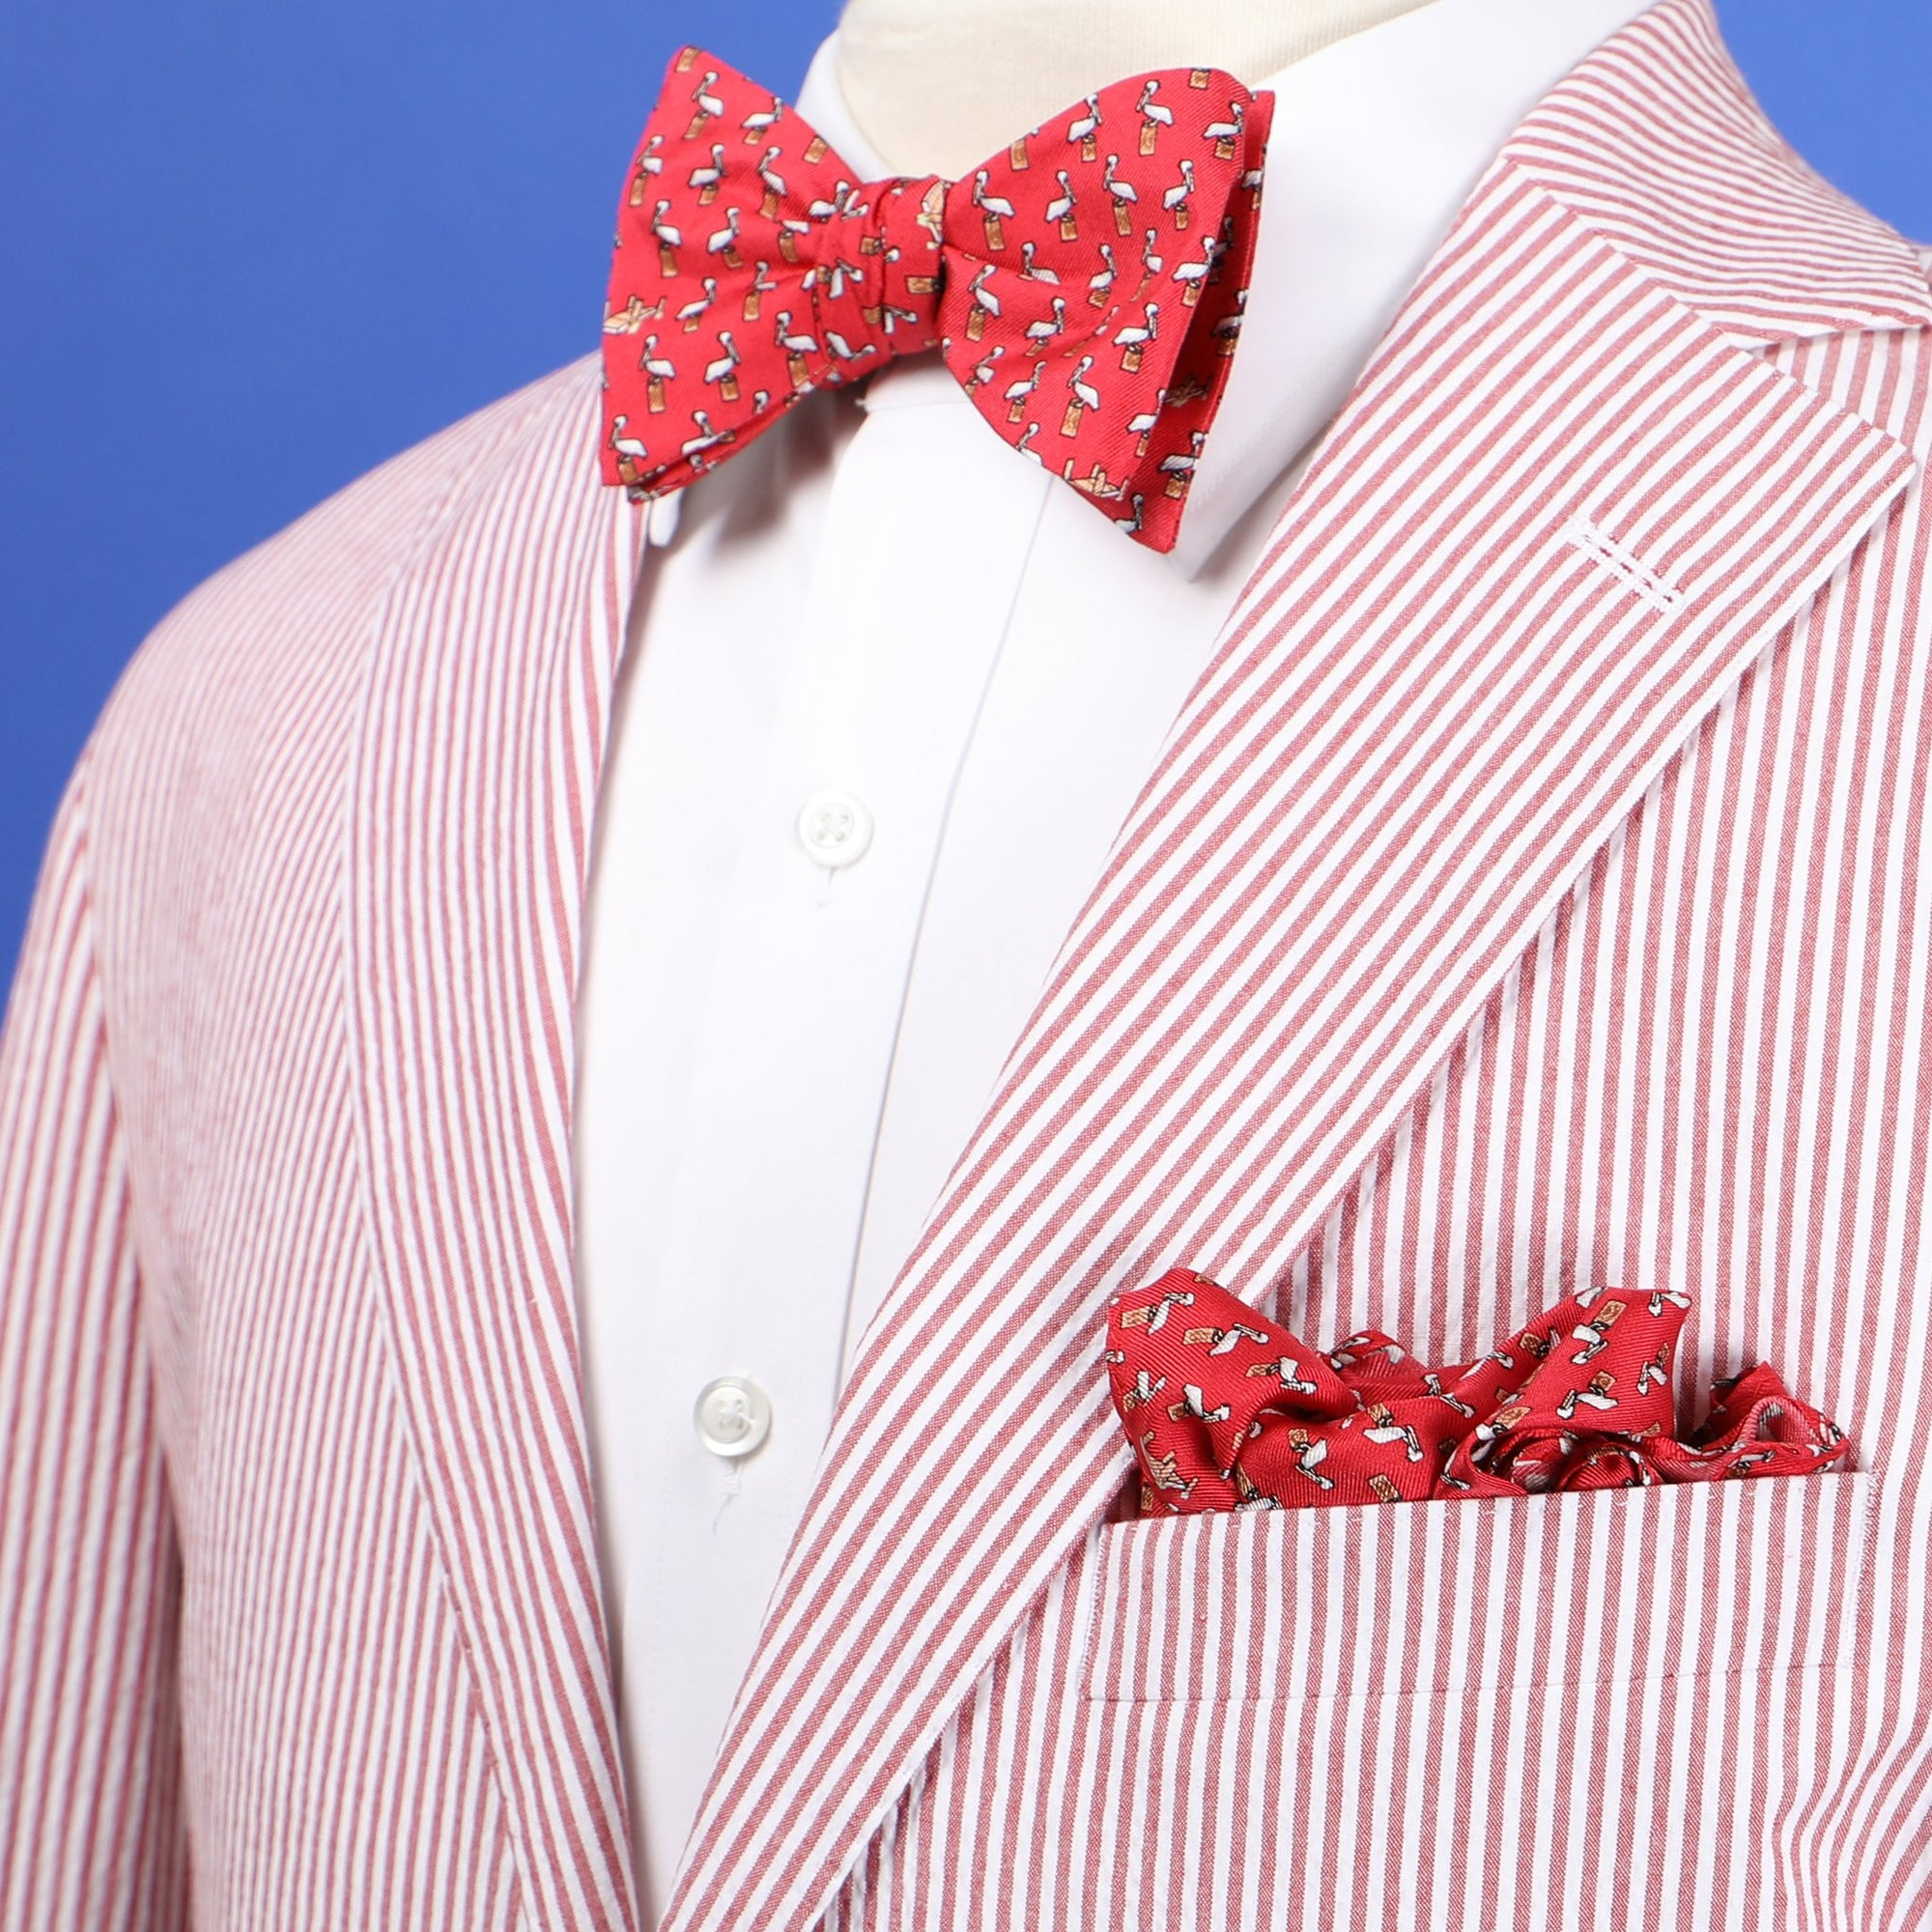 Limited Edition NOLA Couture X Haspel Red Pelican Print Bow Tie - O/S